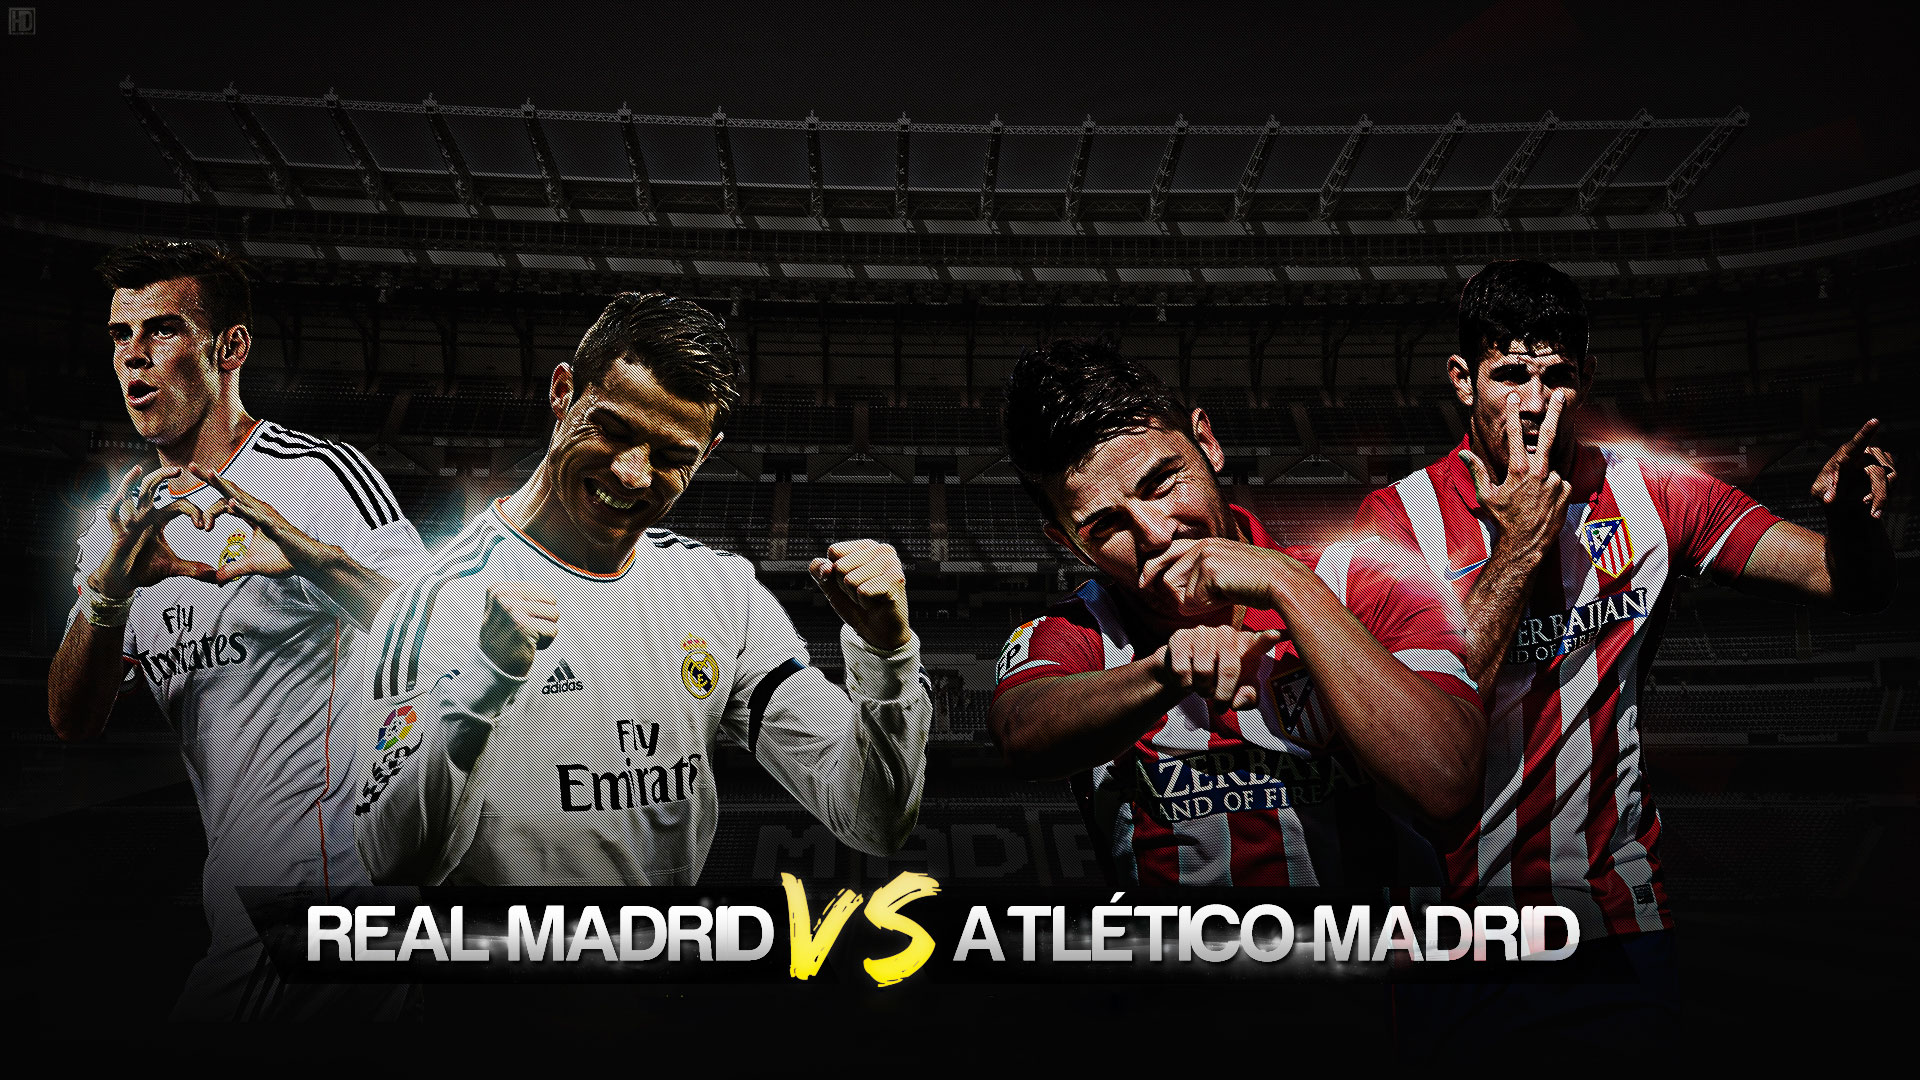 Real Madrid vs Atletico Madrid 2014 Wallpaper Wallpaper